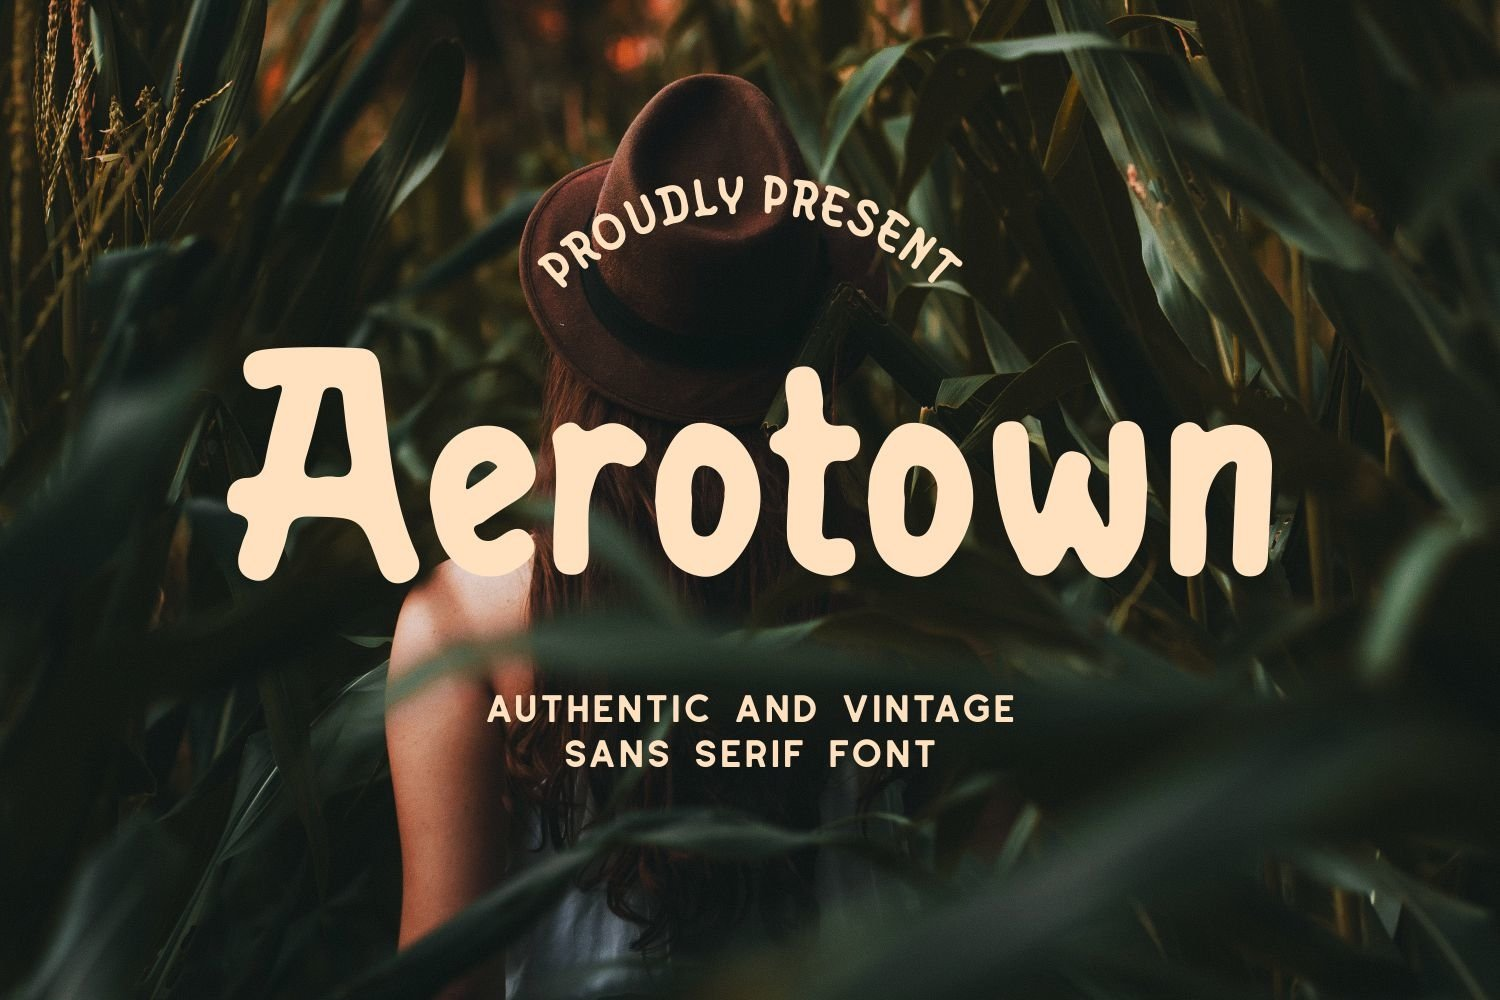 Aerotown - Authentic and Vintage Sans Serif Font example image 1